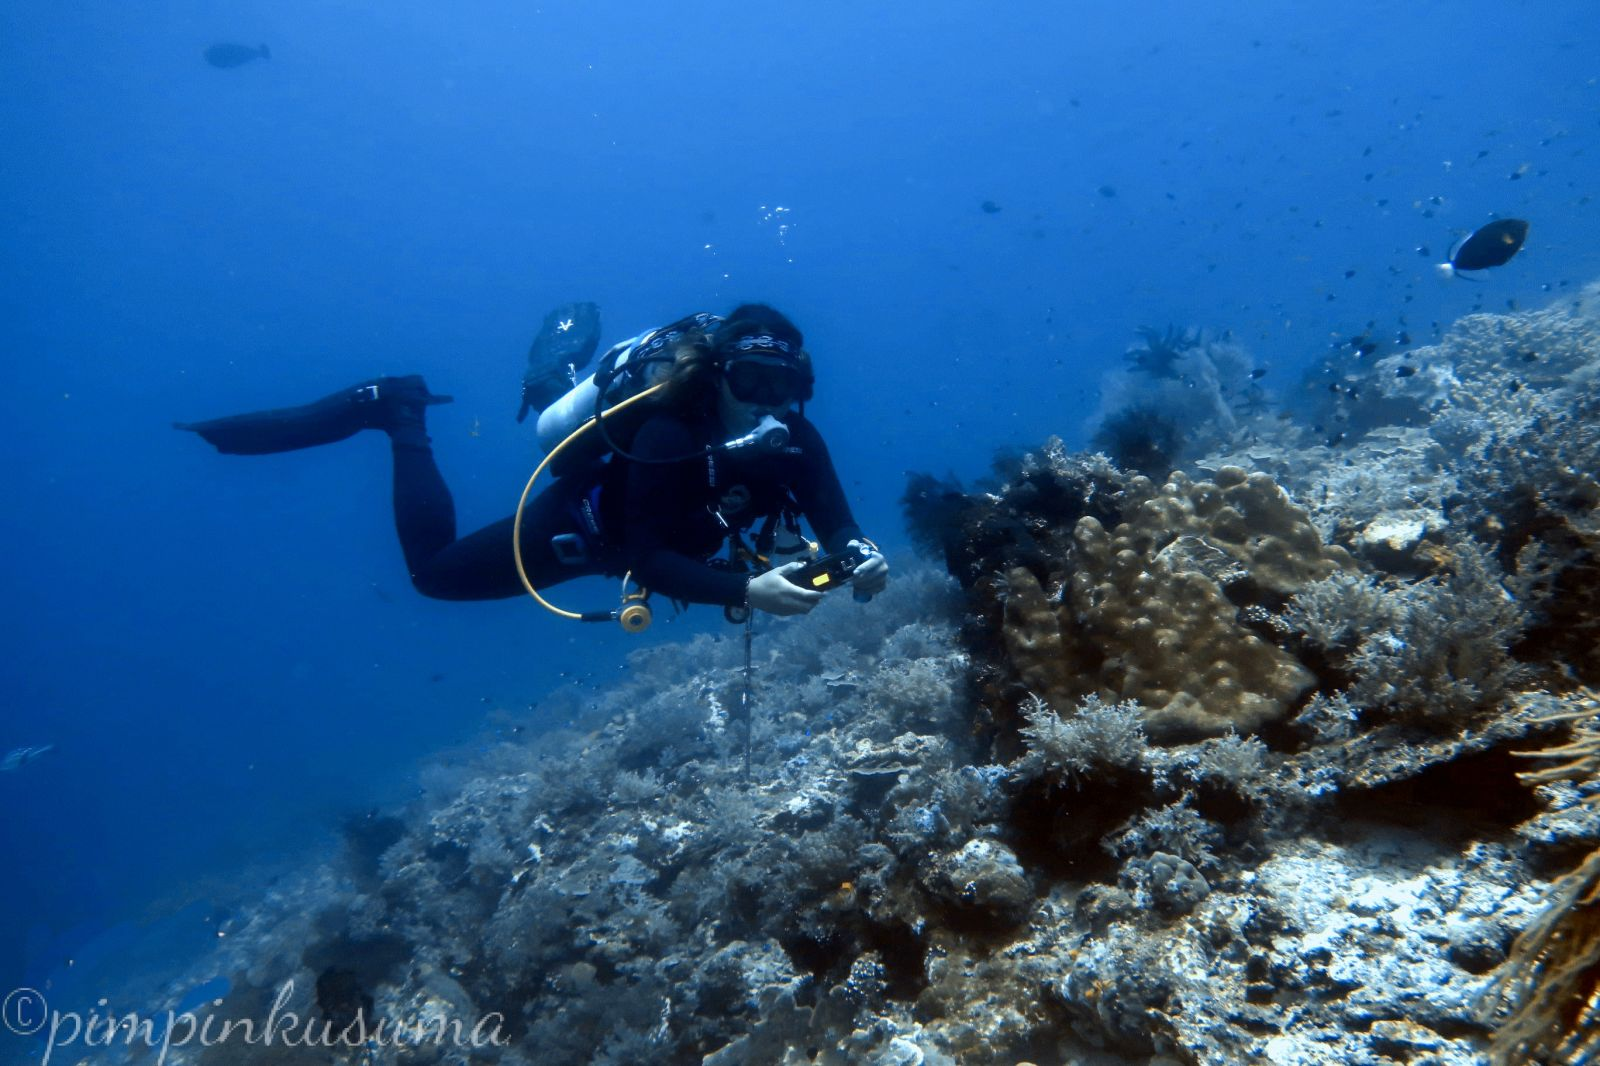 buoyancy control while scuba diving